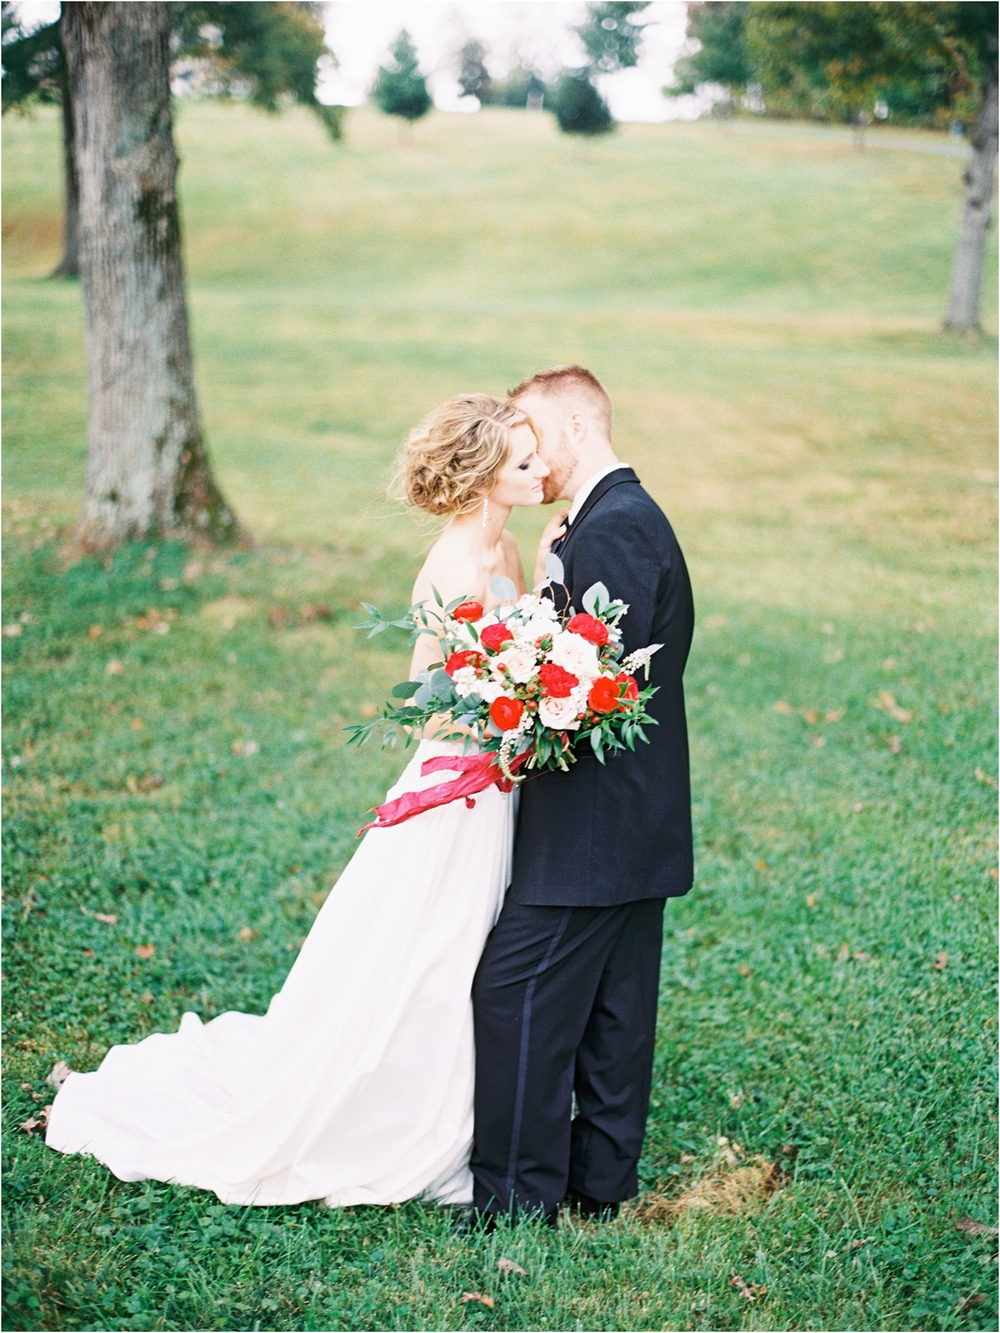 Springfield MO Wedding Ideas - Jordan Brittley (www.jordanbrittley.com) / Floral Design - He Loves Me Flowers